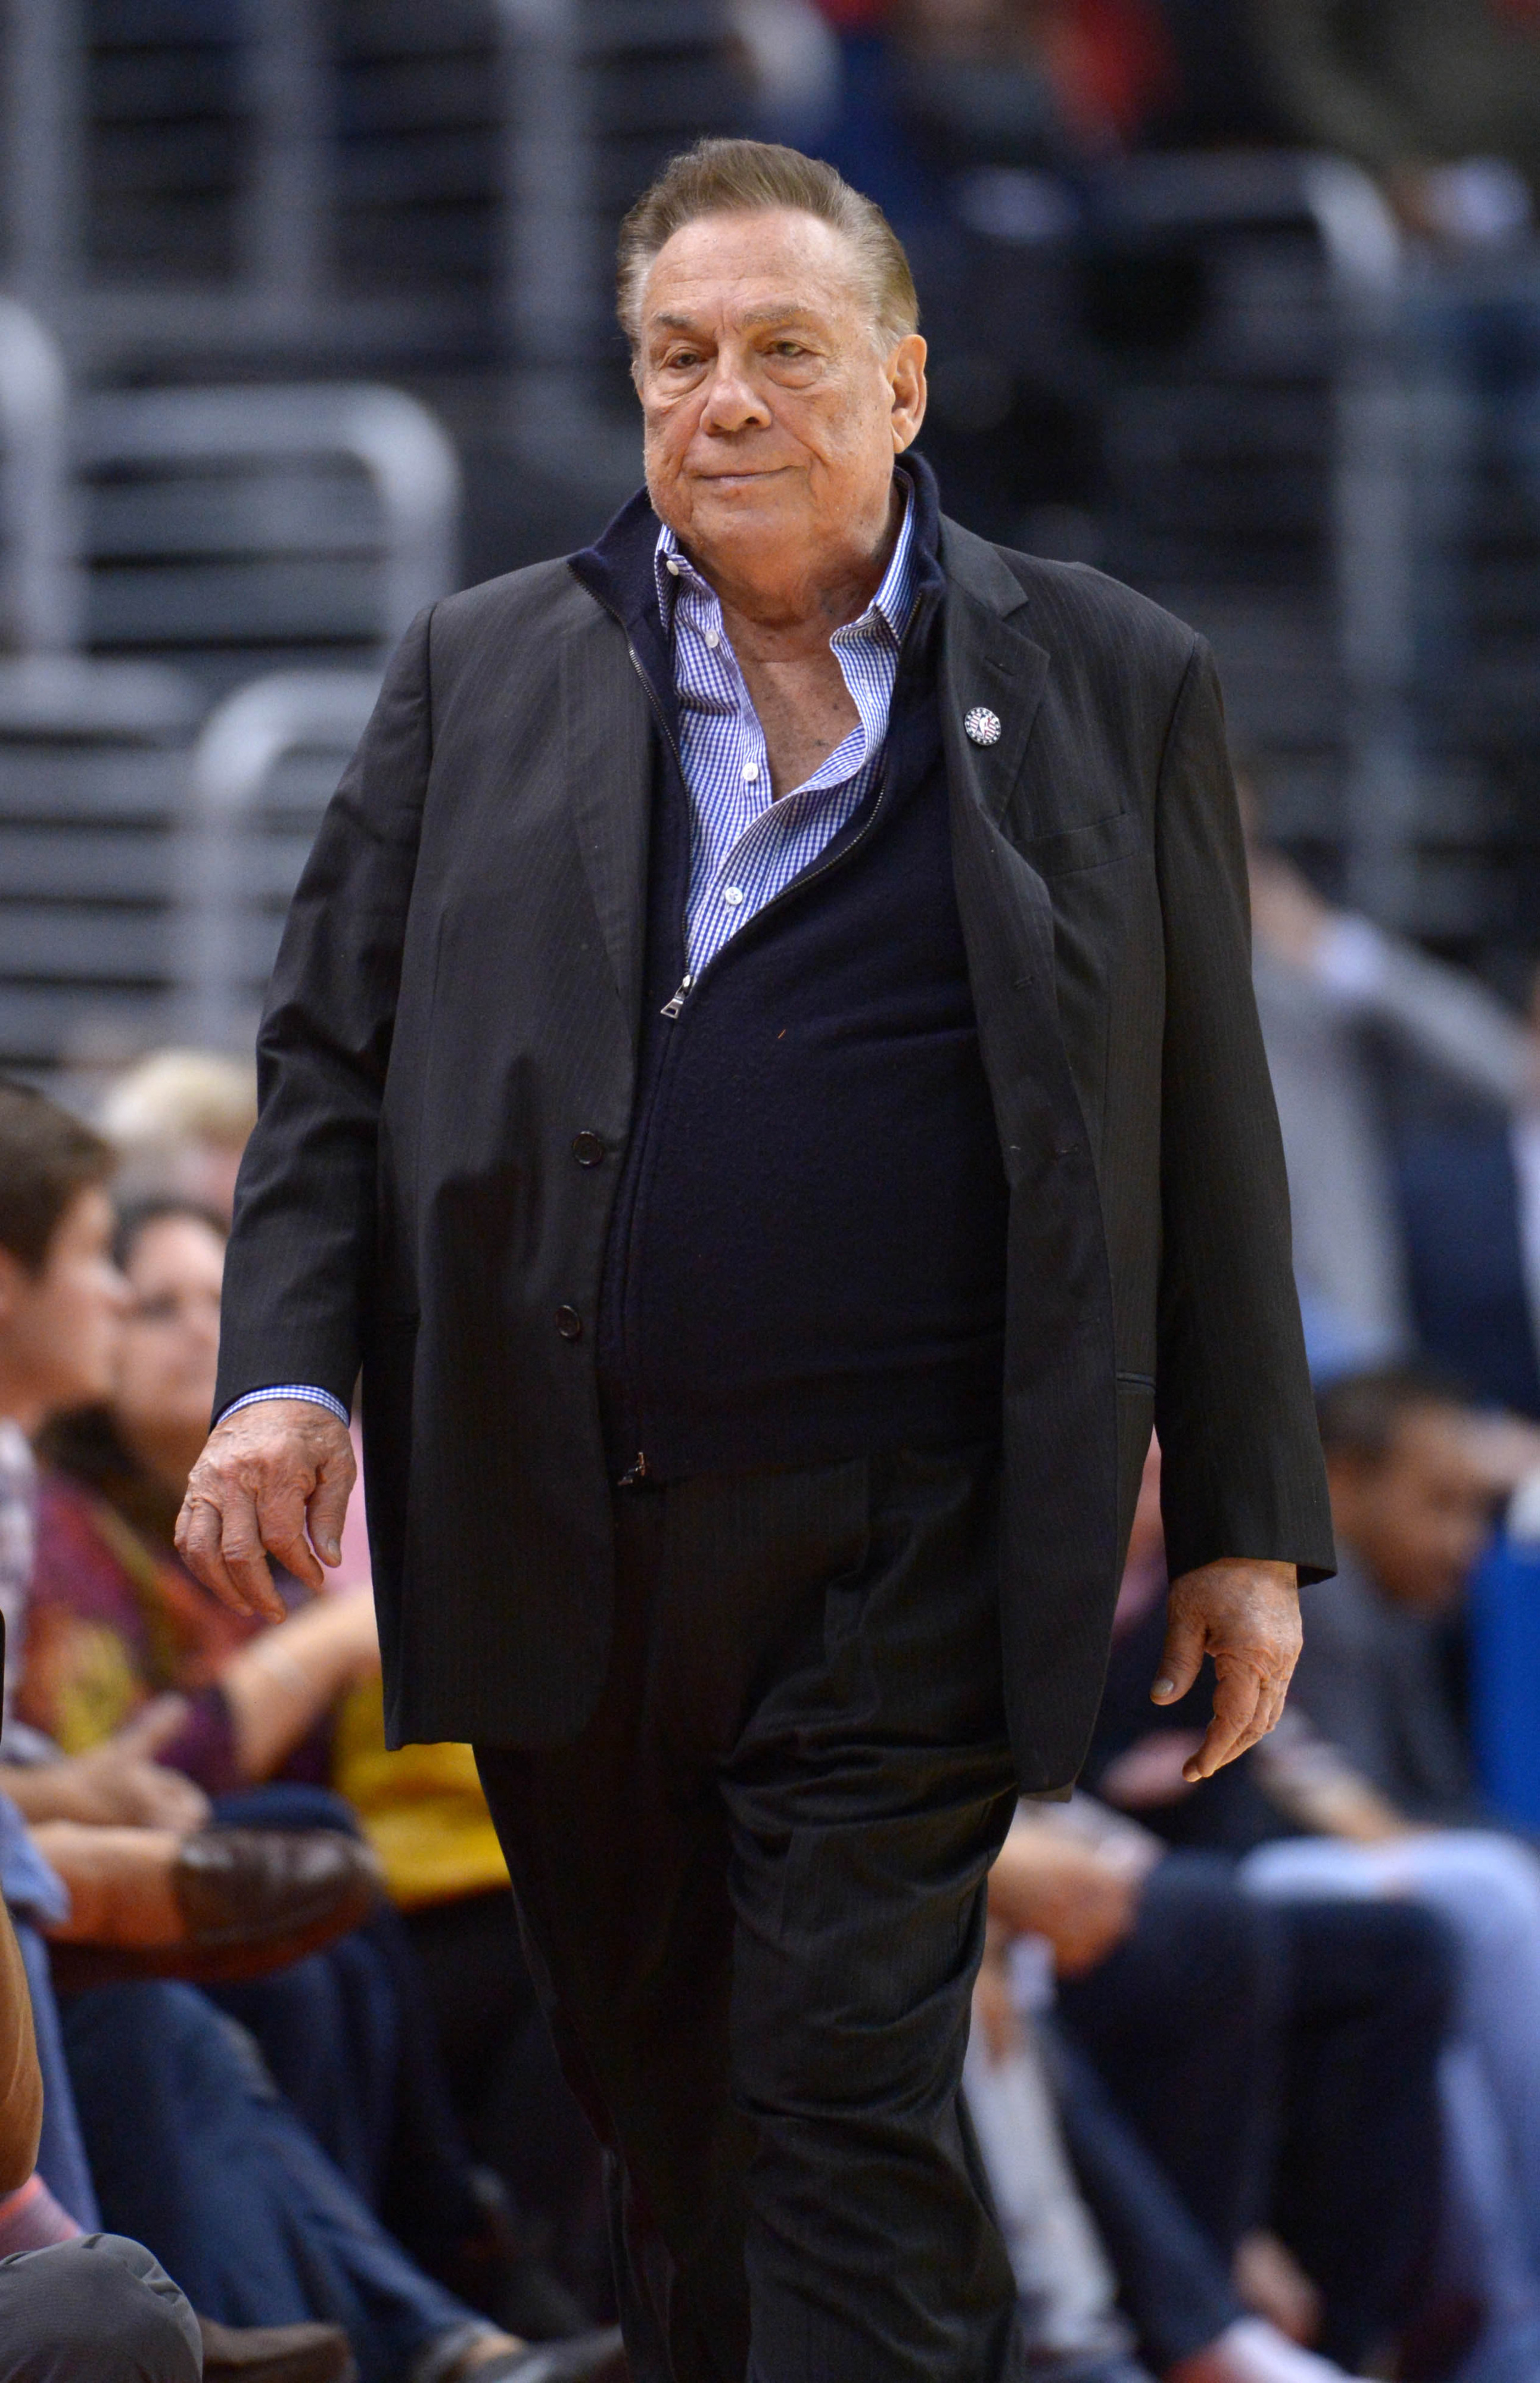 Donald Sterling suspended for life, fined $2.5 million by NBA for racist remarks